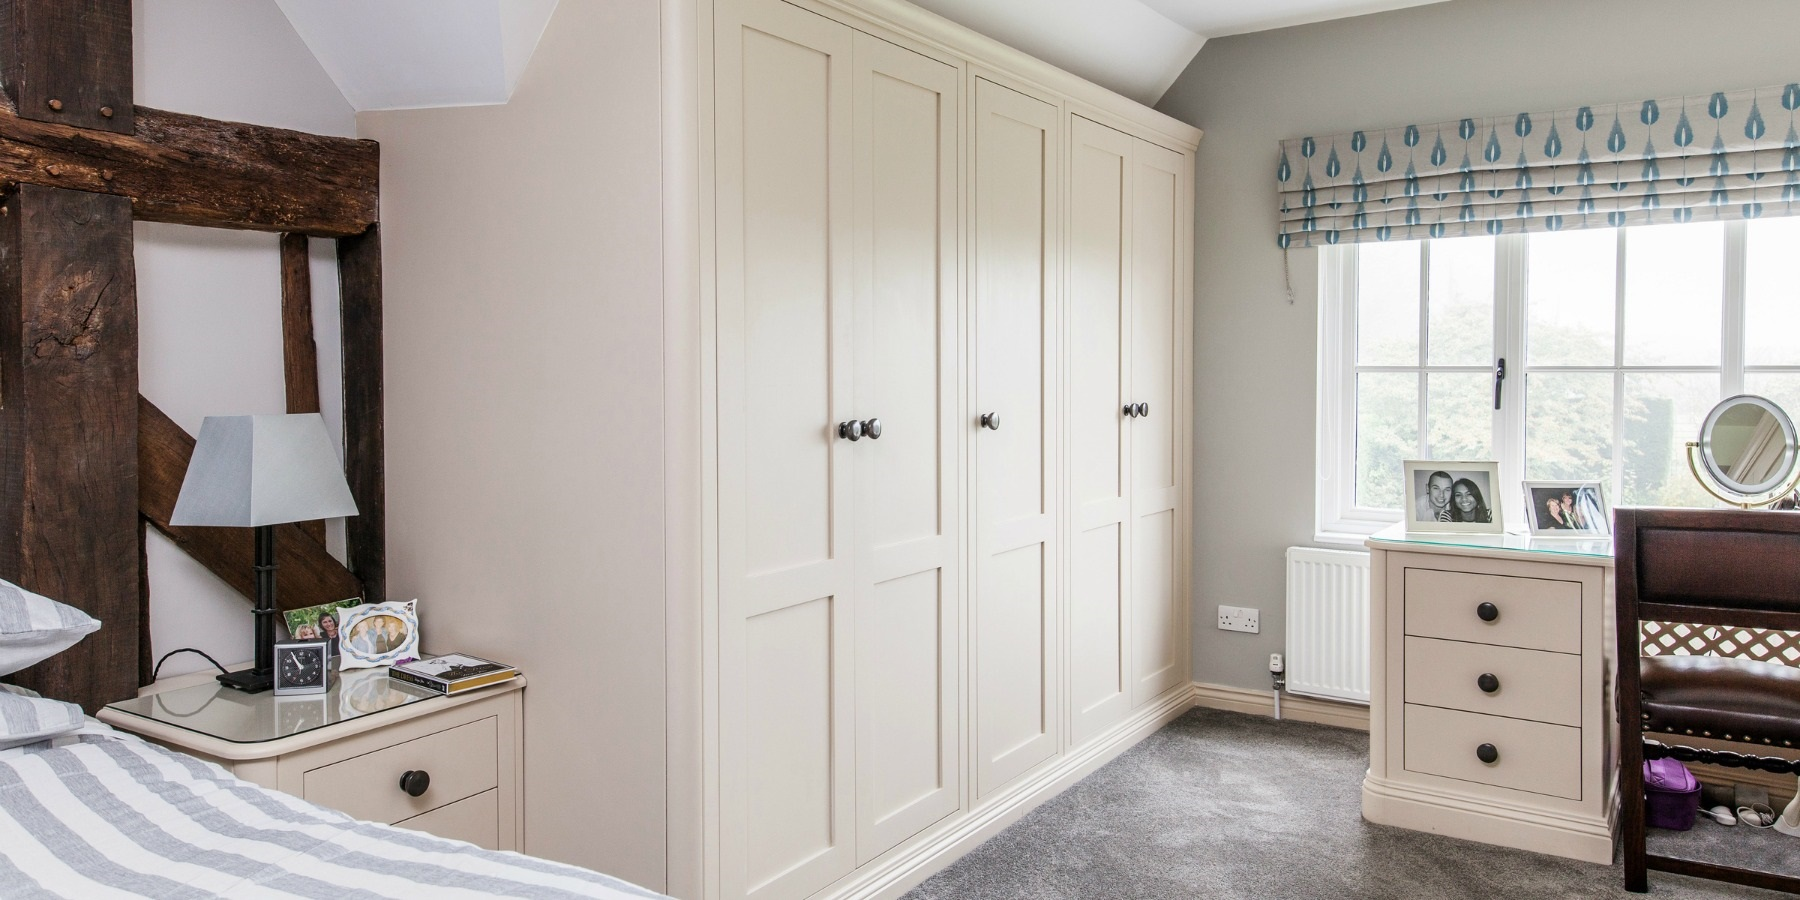 Handmade Freestanding Wardrobes & Bedroom Furniture - Burlanes bespoke bedroom furniture and freestanding handpainted wardrobes.